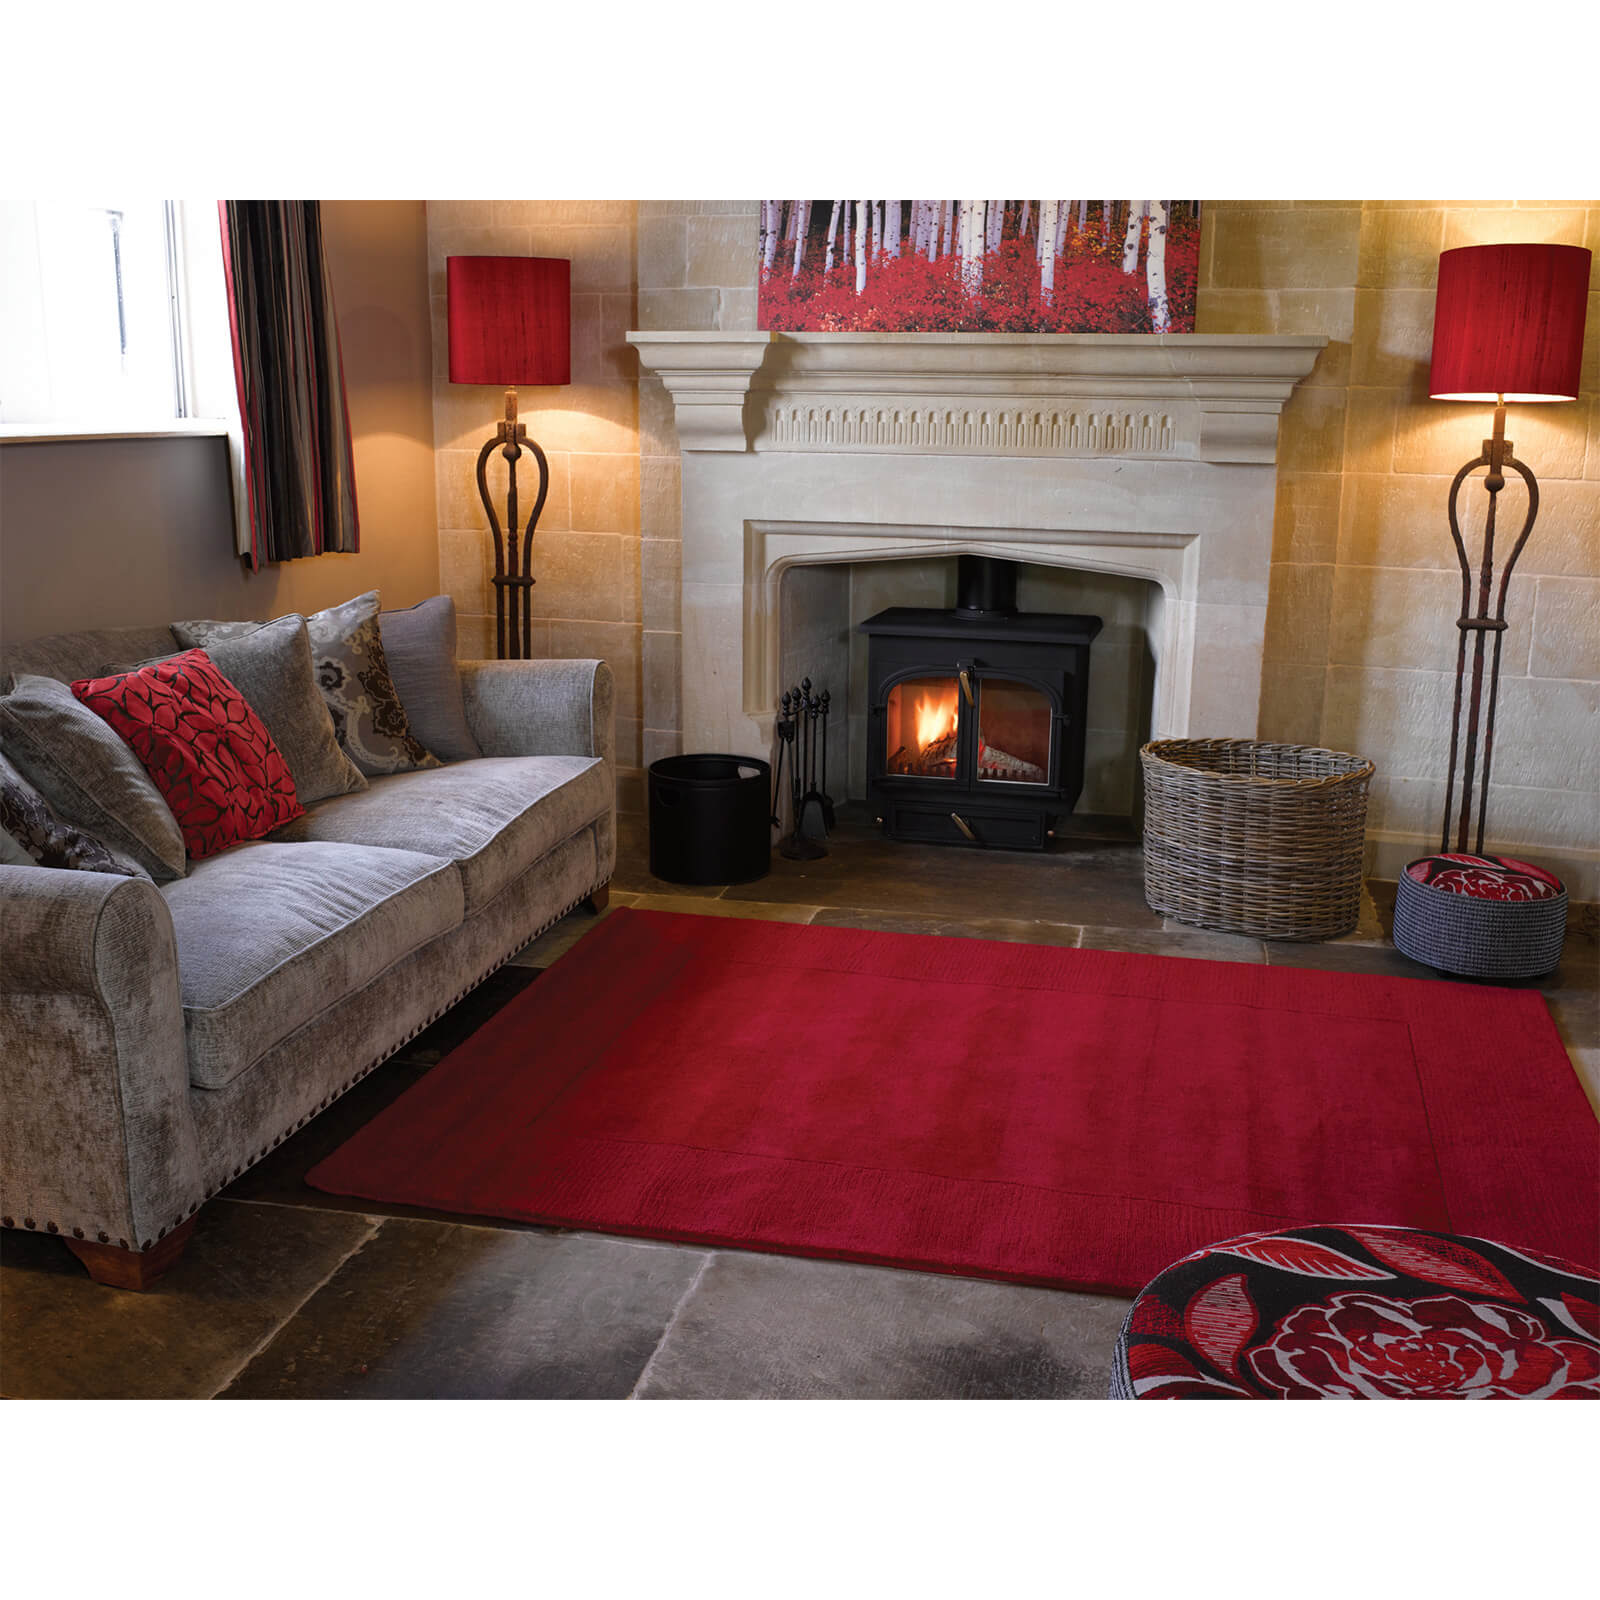 Flair Tuscany Siena Rug - Red